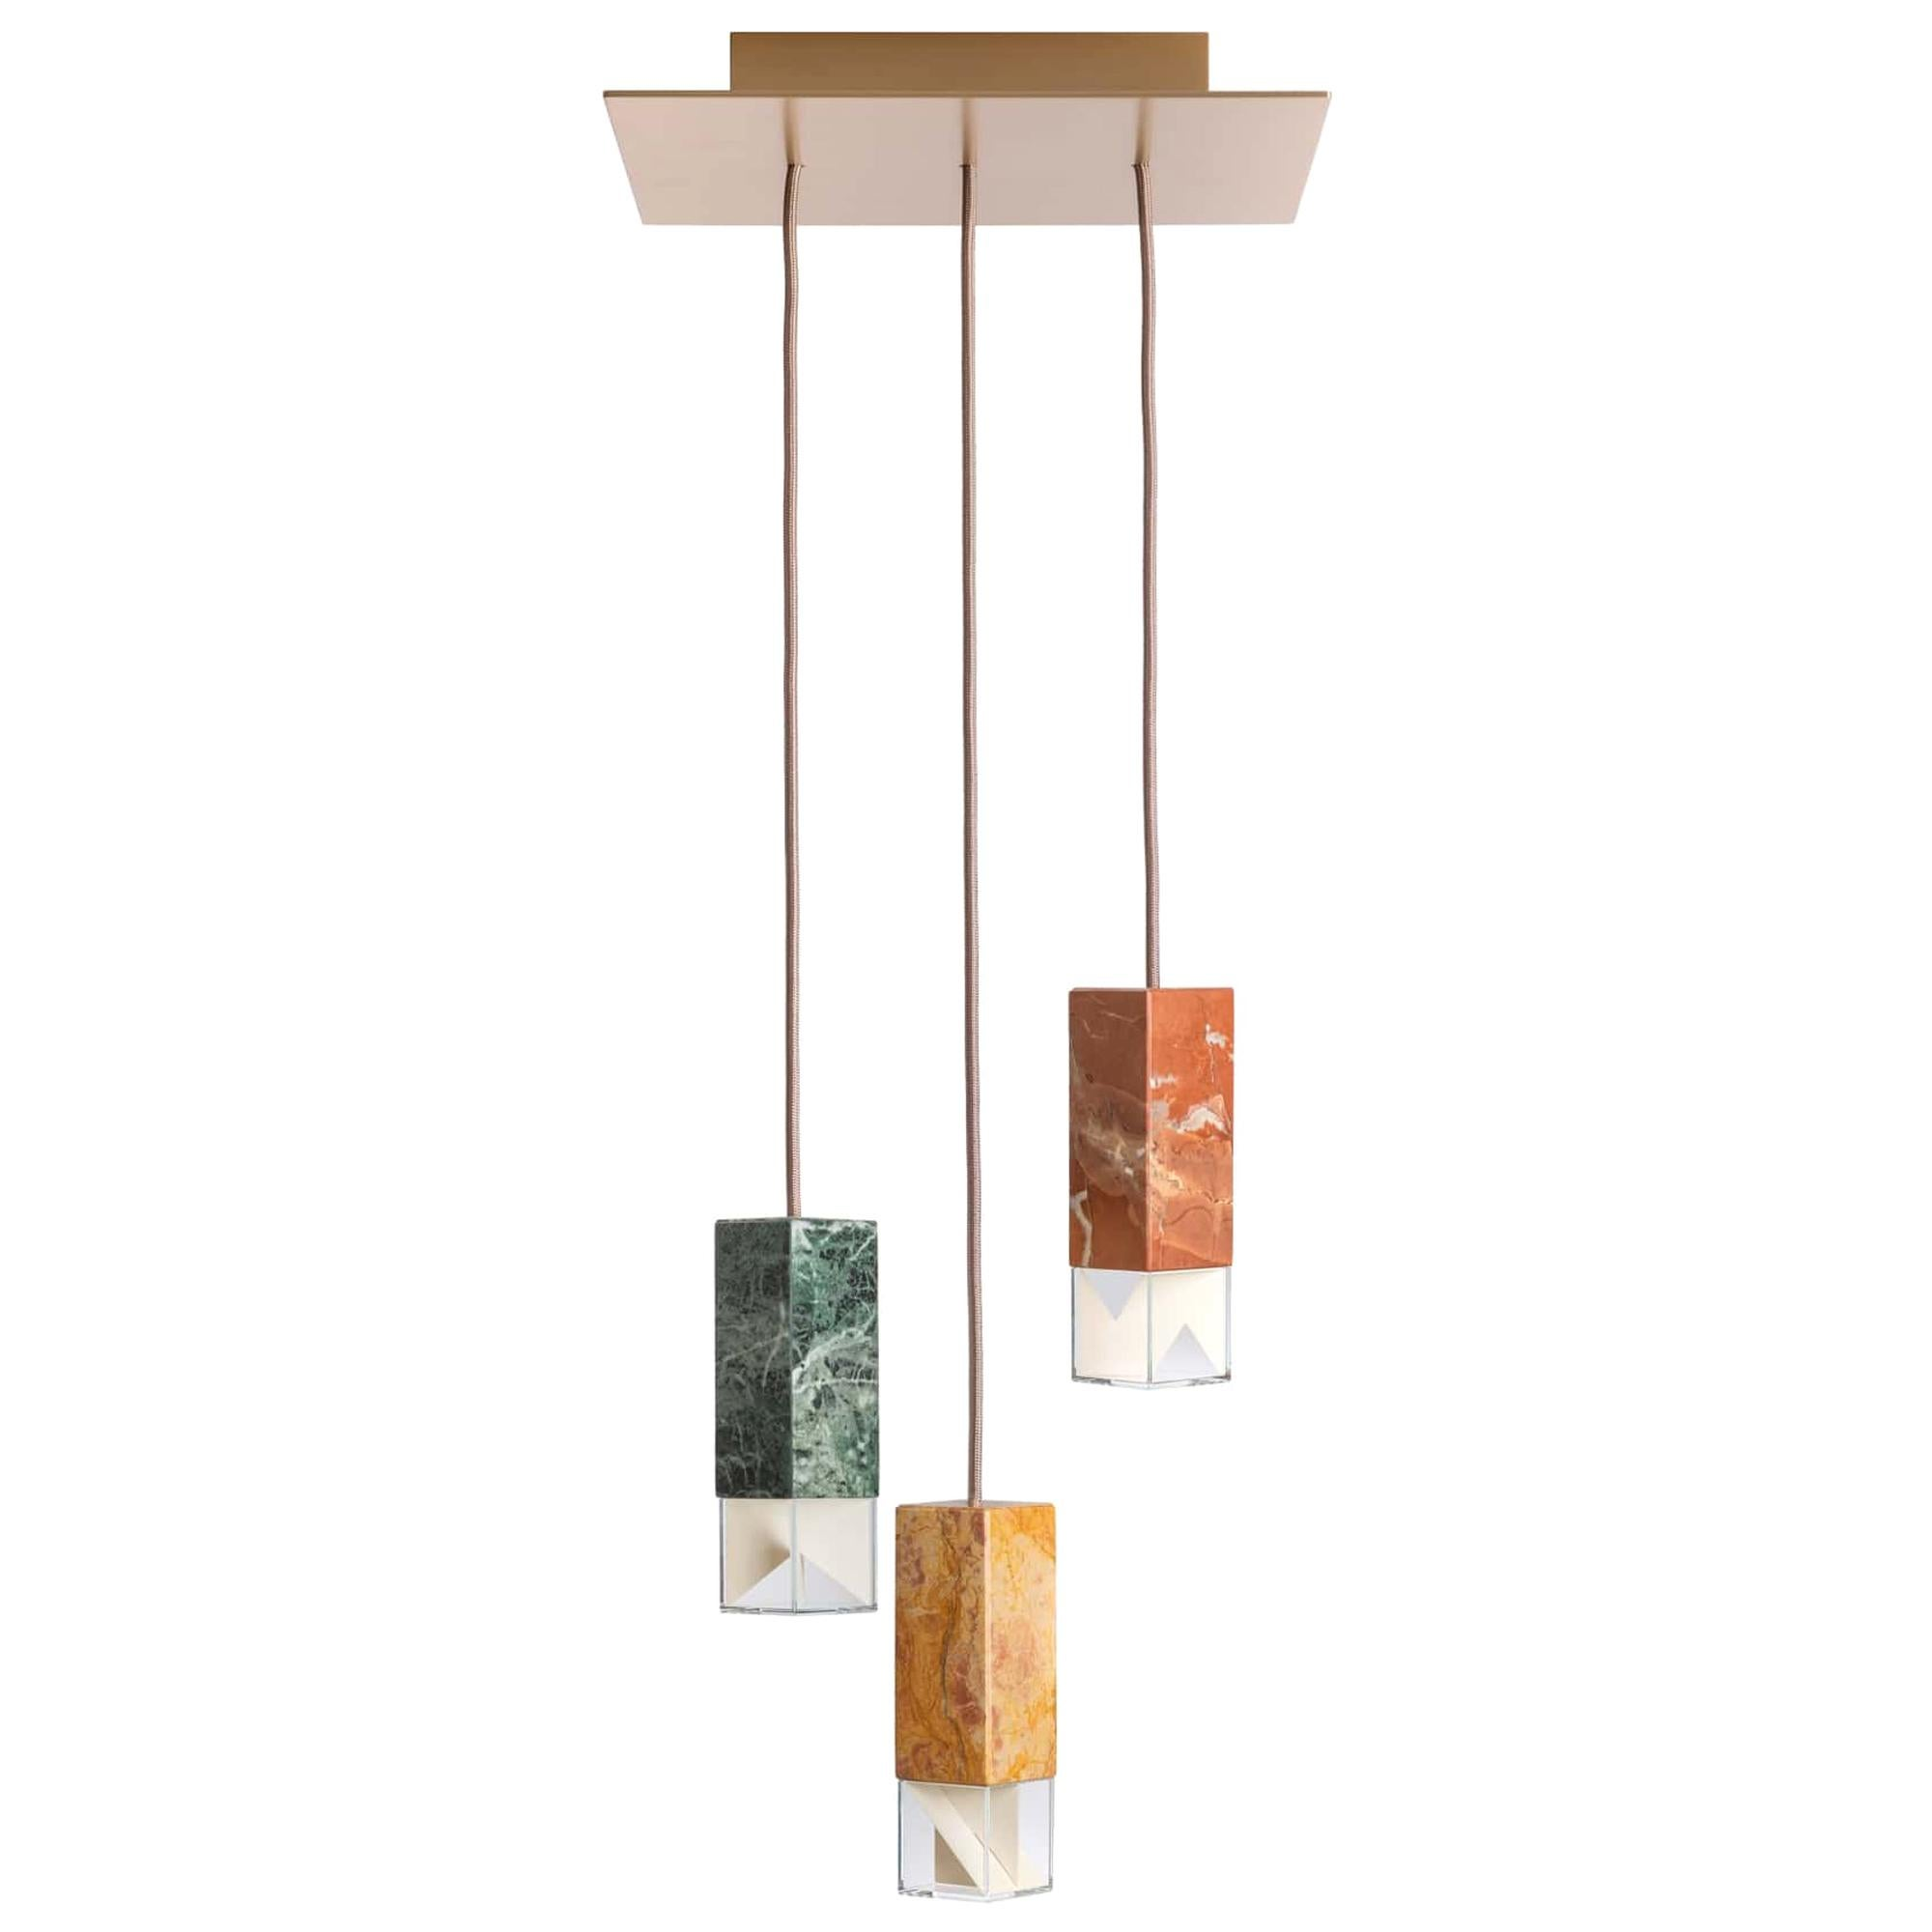 Lamp One Chandelier Color Edition by Formaminima